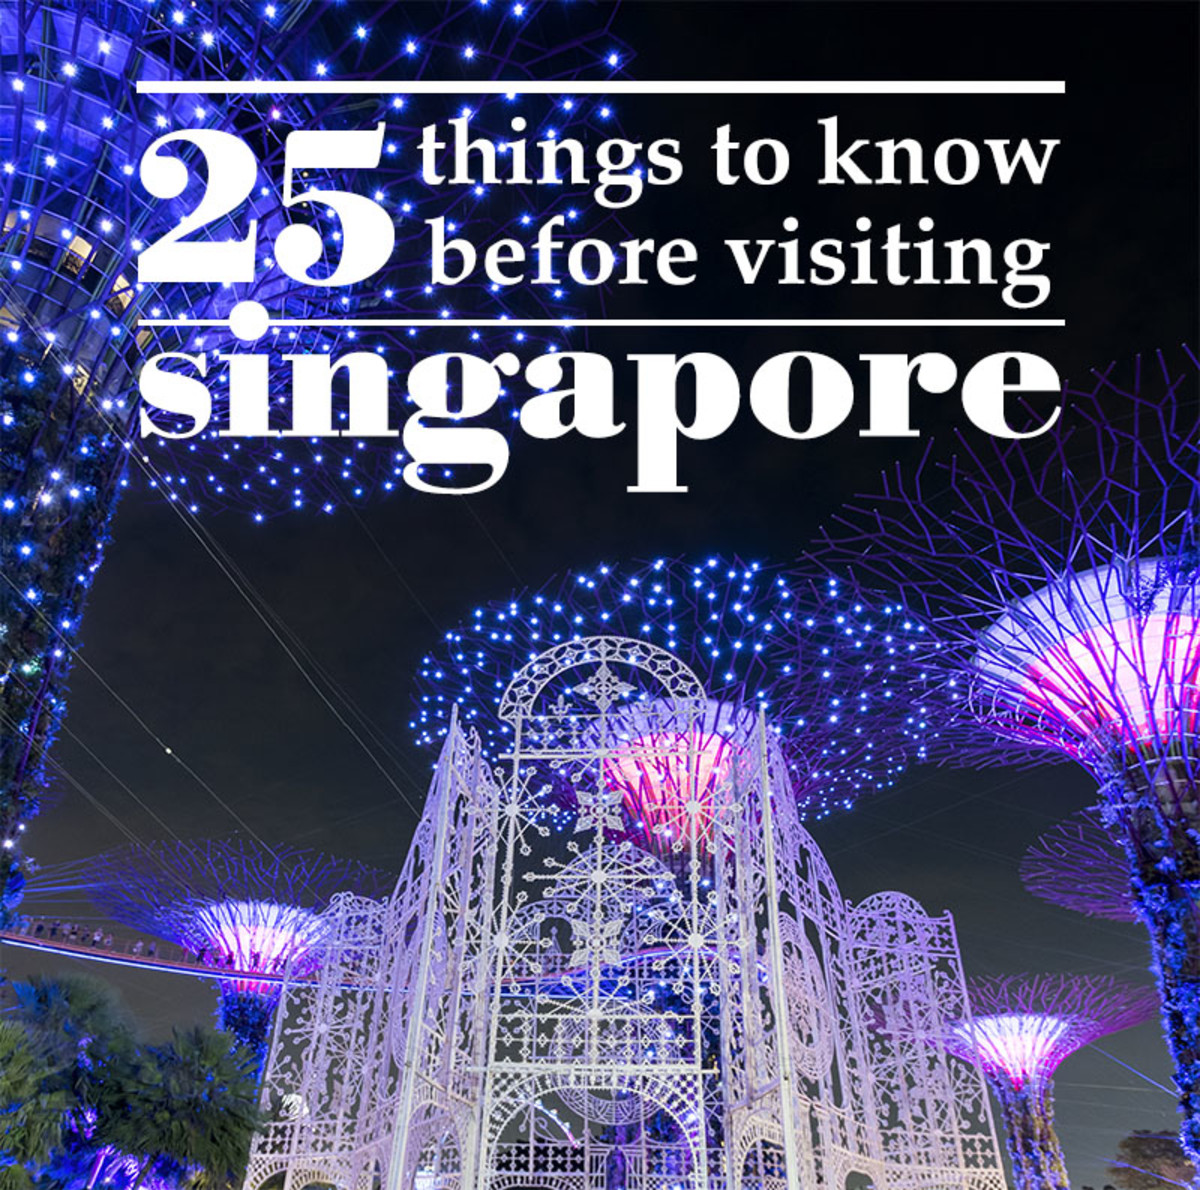 25 Things to Know Before Visiting Singapore